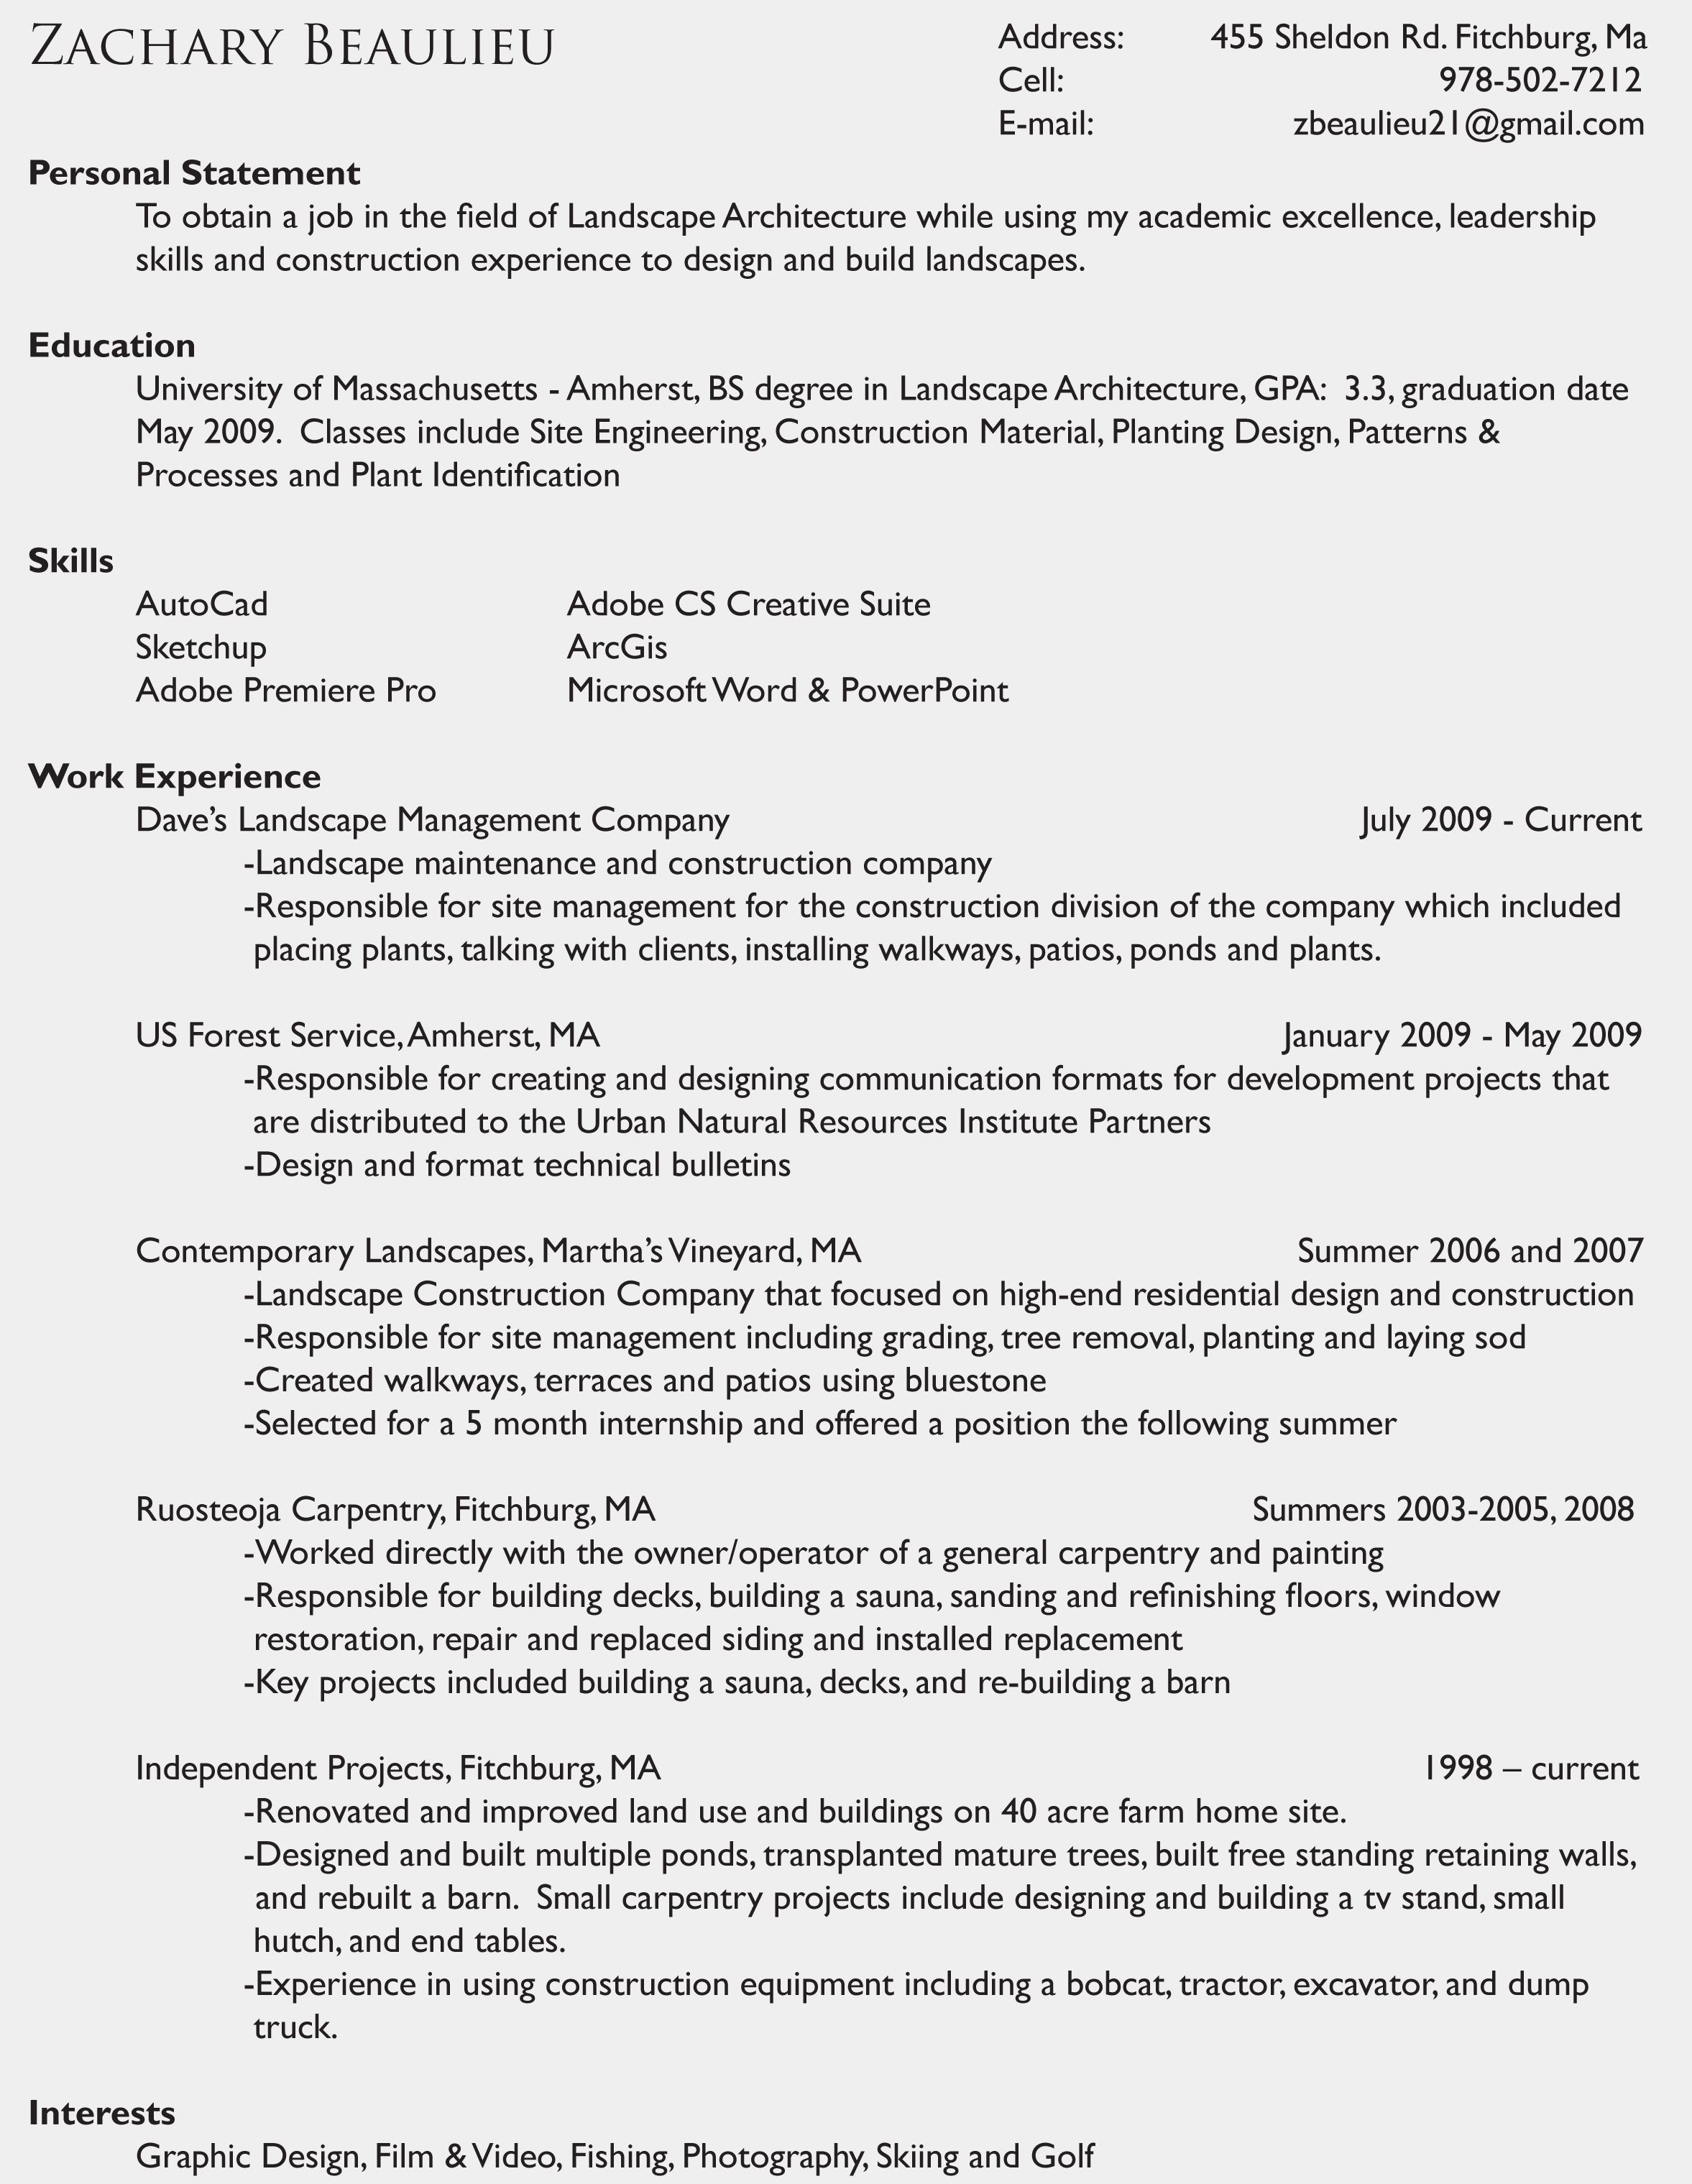 Essay Writing Service Unethical Esthetician Resume Cover Letter